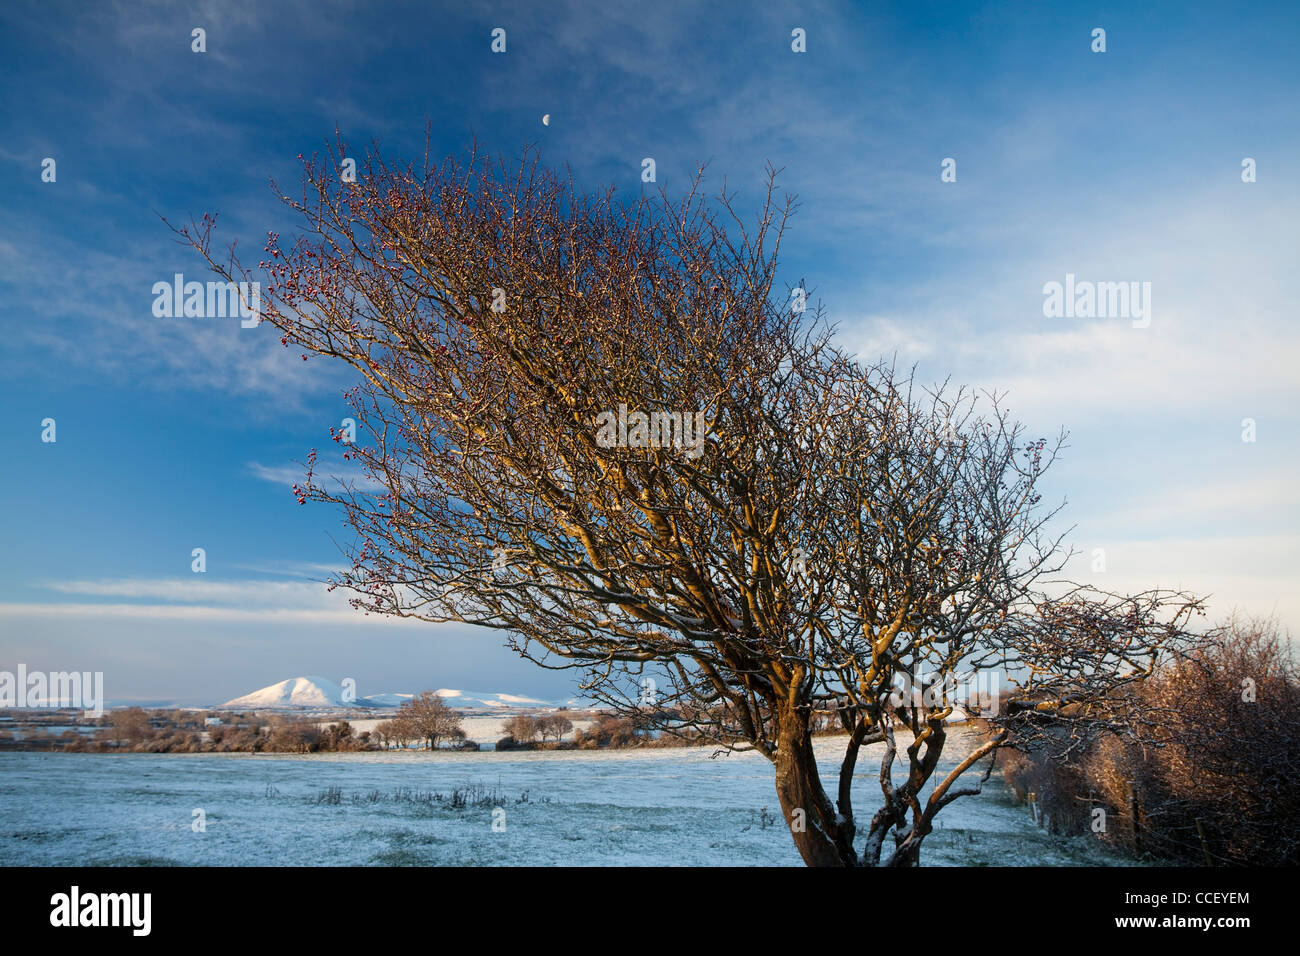 Winter hawthorn tree beneath the Nephin Beg Mountains, County Sligo, Ireland. - Stock Image